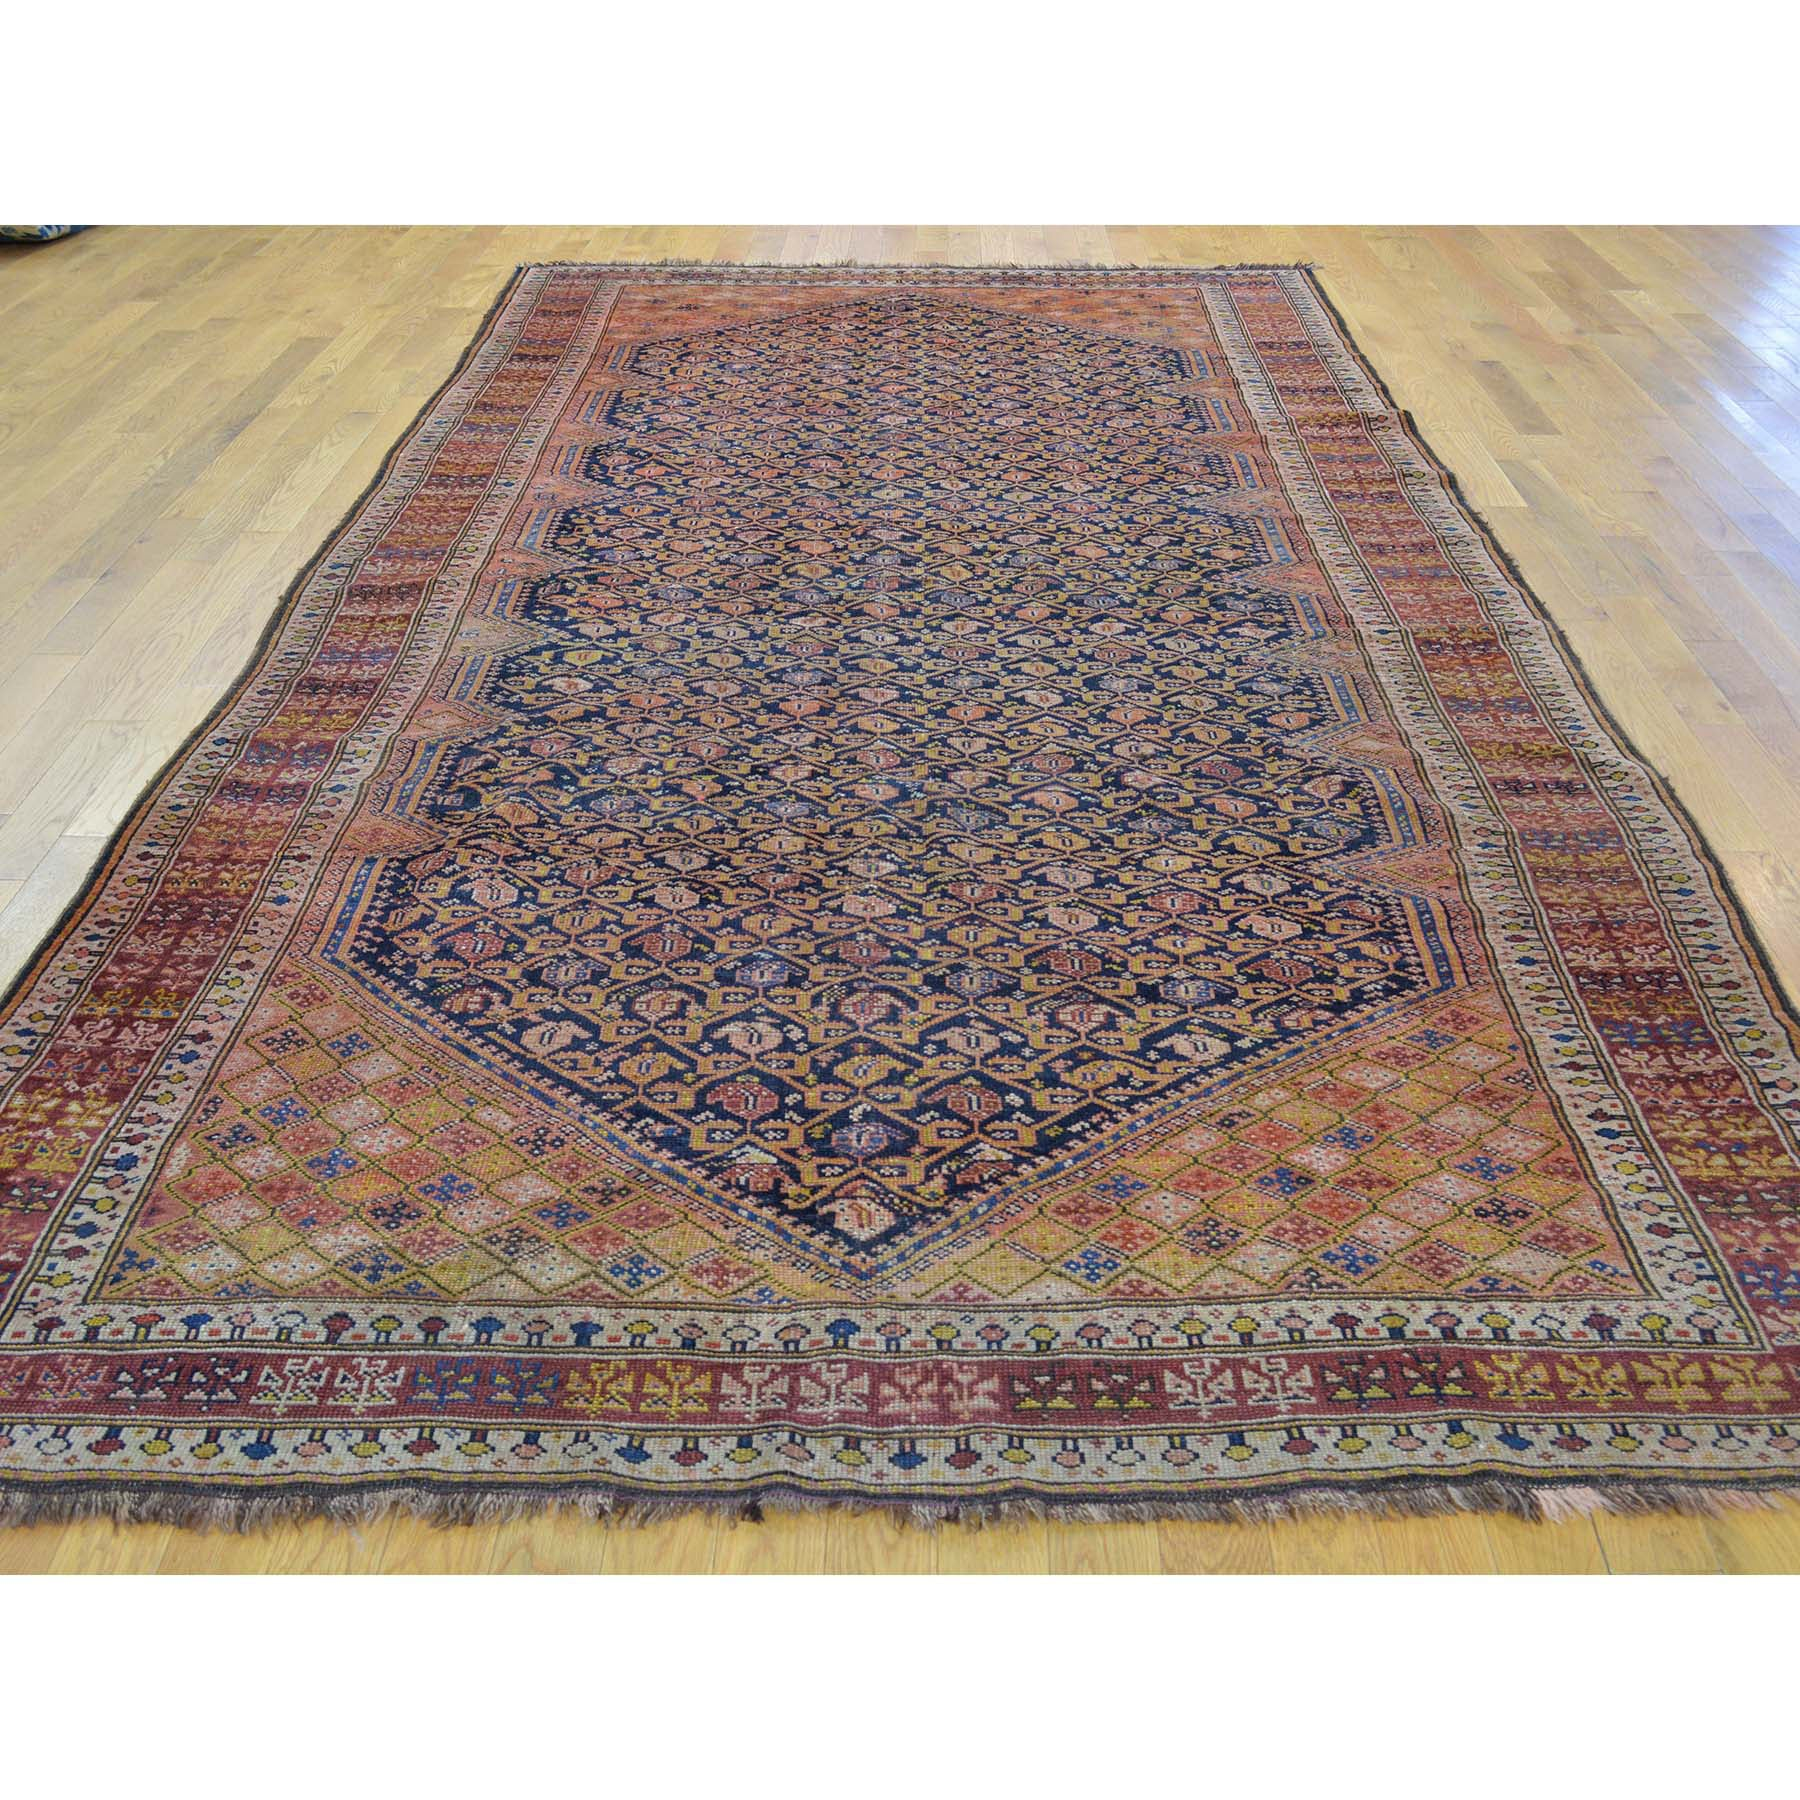 "Handmade Antique Runner Rug > Design# SH30160 > Size: 6'-3"" x 11'-10"" [ONLINE ONLY]"